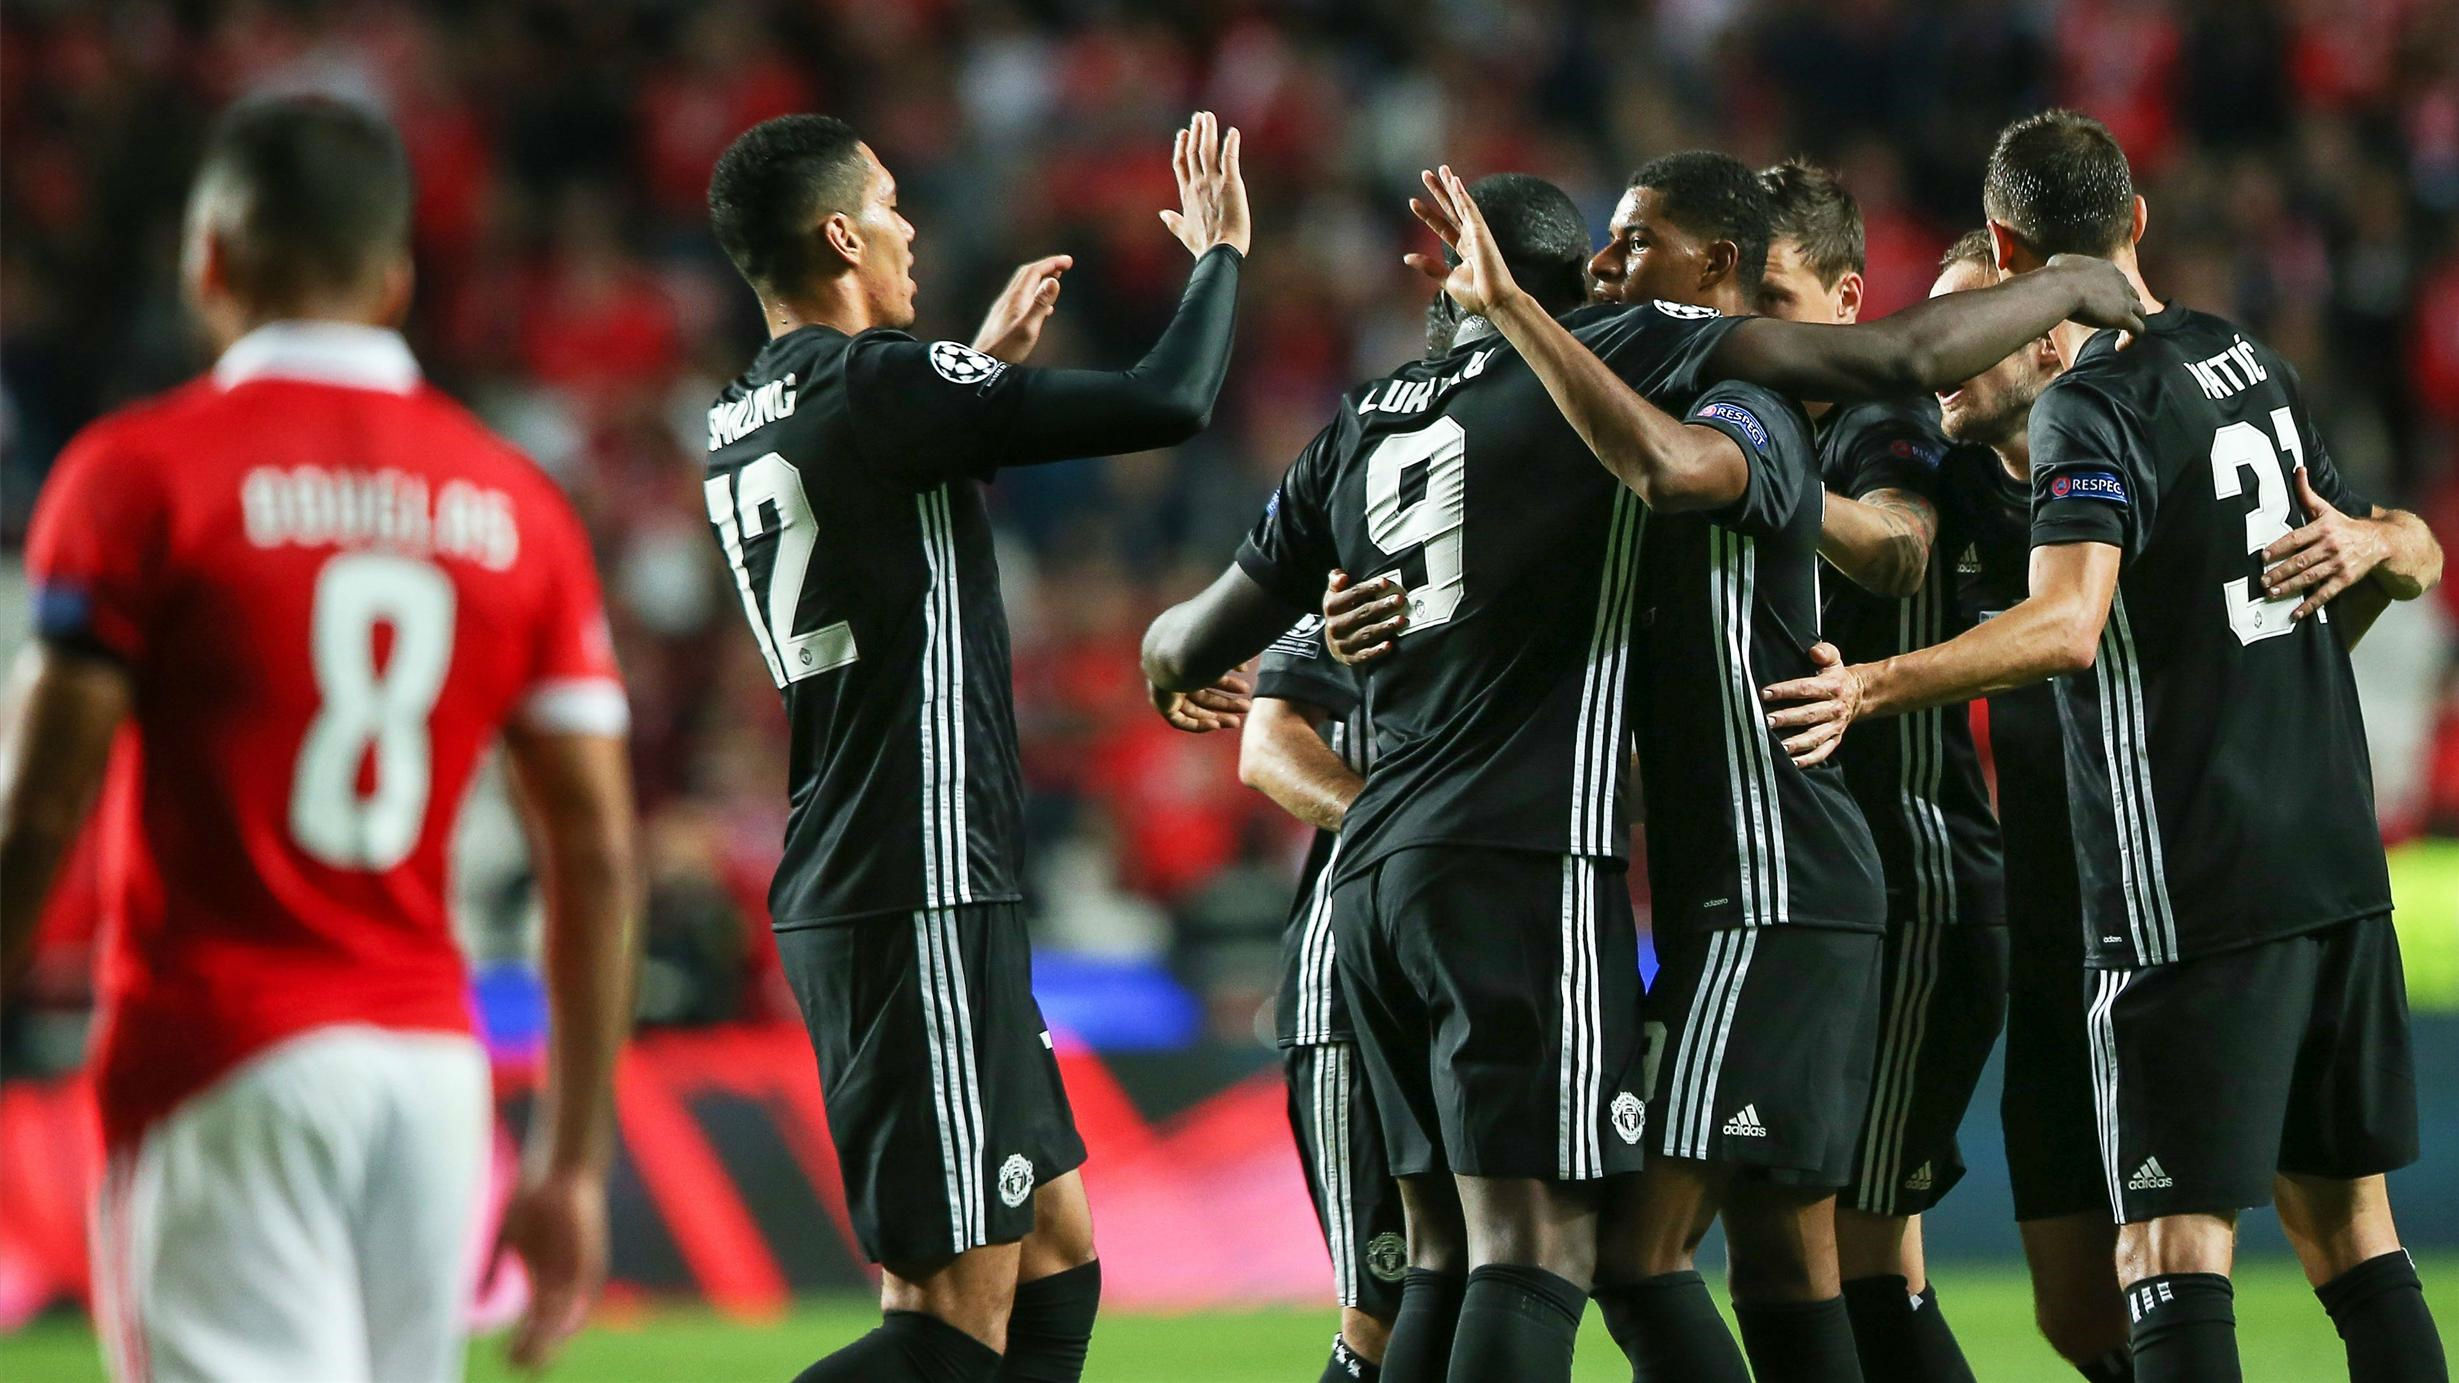 LACHAMPIONS | Benfica - Manchester United (0-1